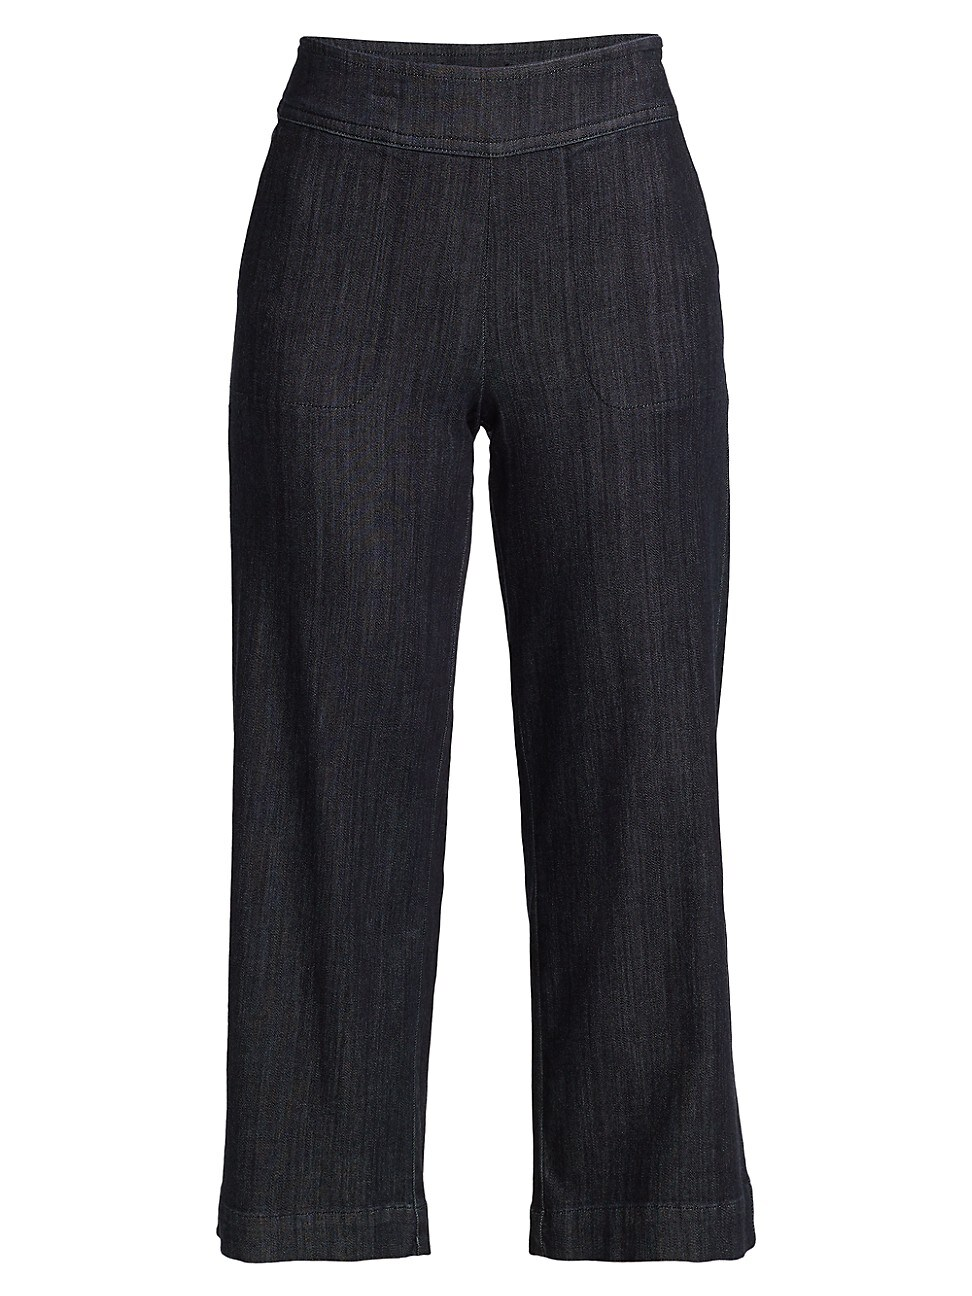 Nic + Zoe WOMEN'S WOVEN CROPPED PANTS